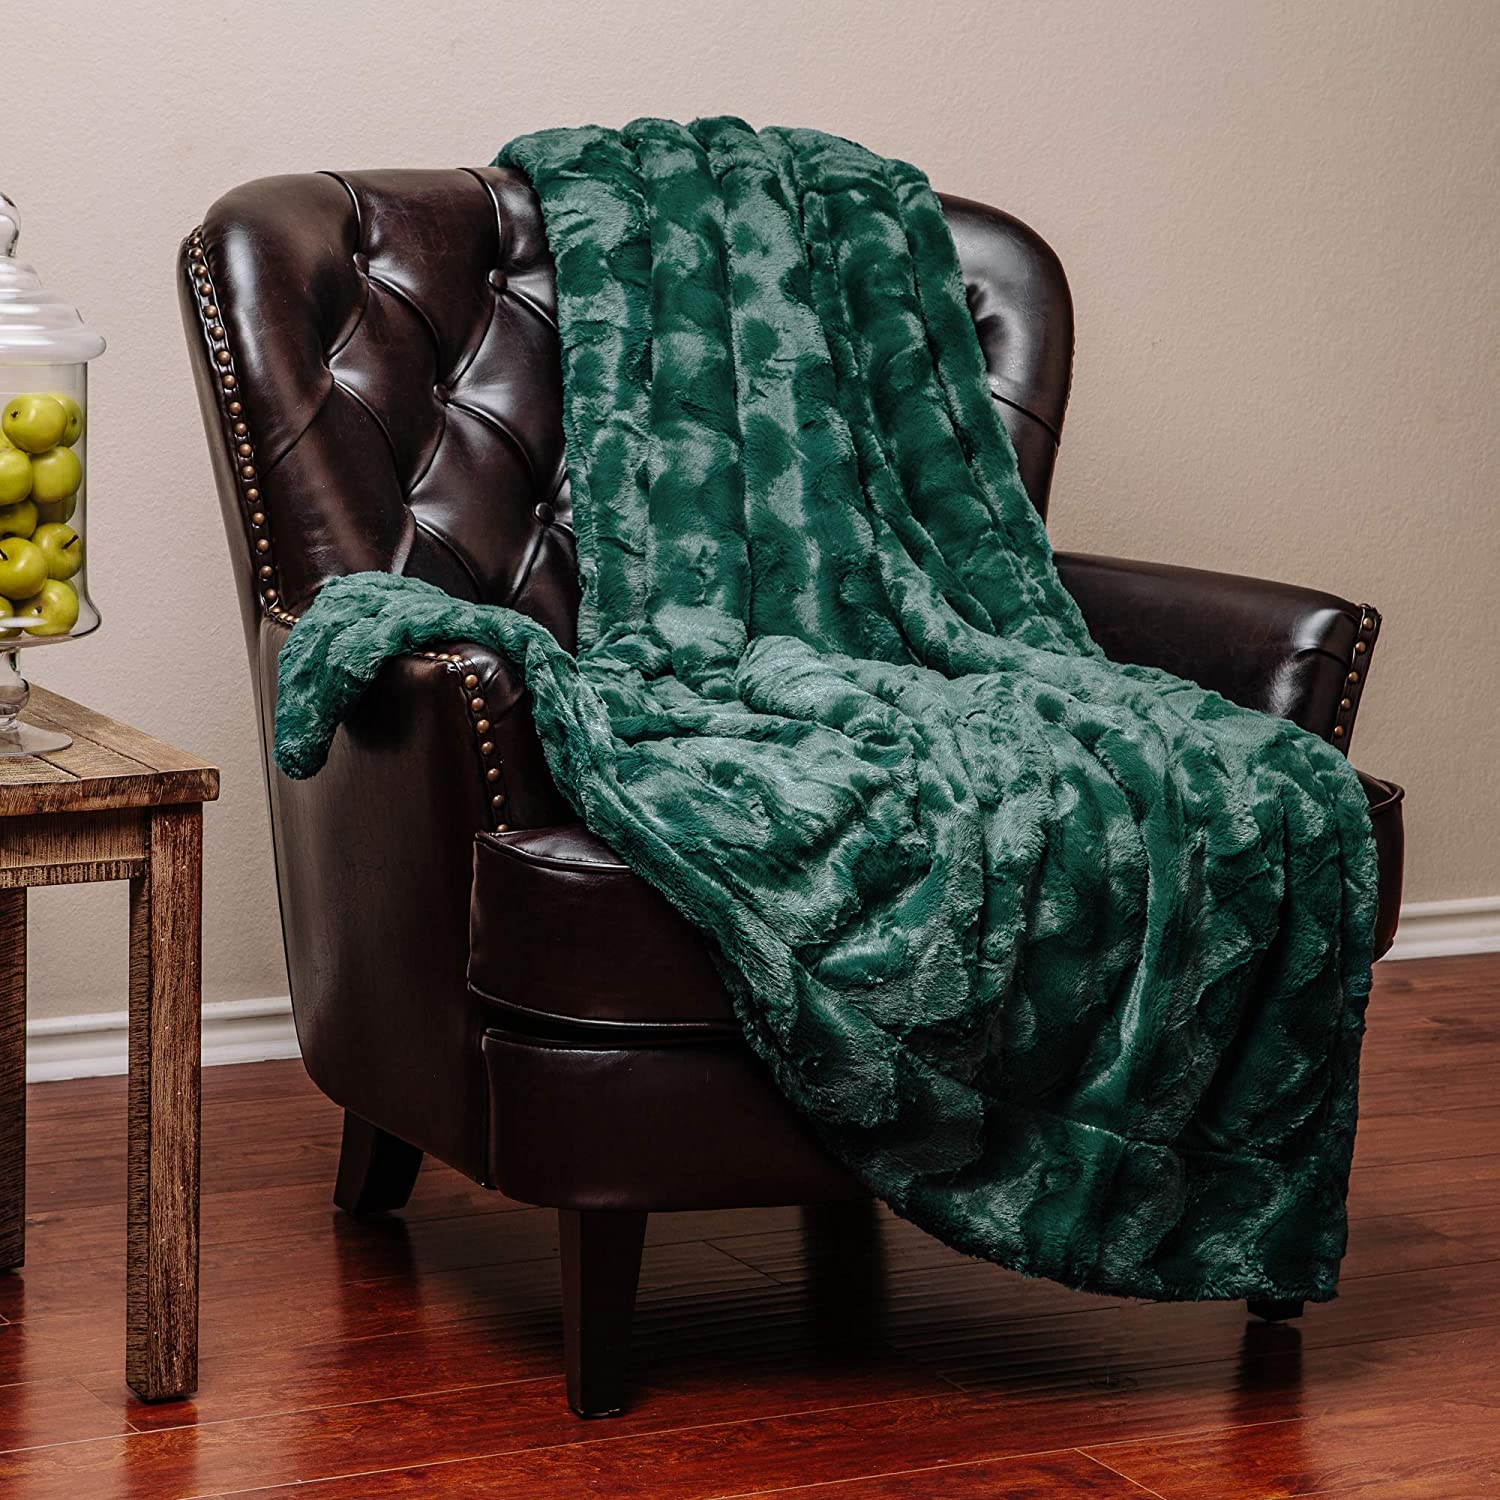 """Chanasya Fur Throw Blanket for Bed Couch Chair Daybed - Soft Wave Embossed Pattern - Warm Elegant Cozy Fuzzy Fluffy Faux Fur Plush Suitable for Fall Winter Summer Spring (50"""" x 65"""") - Teal Blanket"""